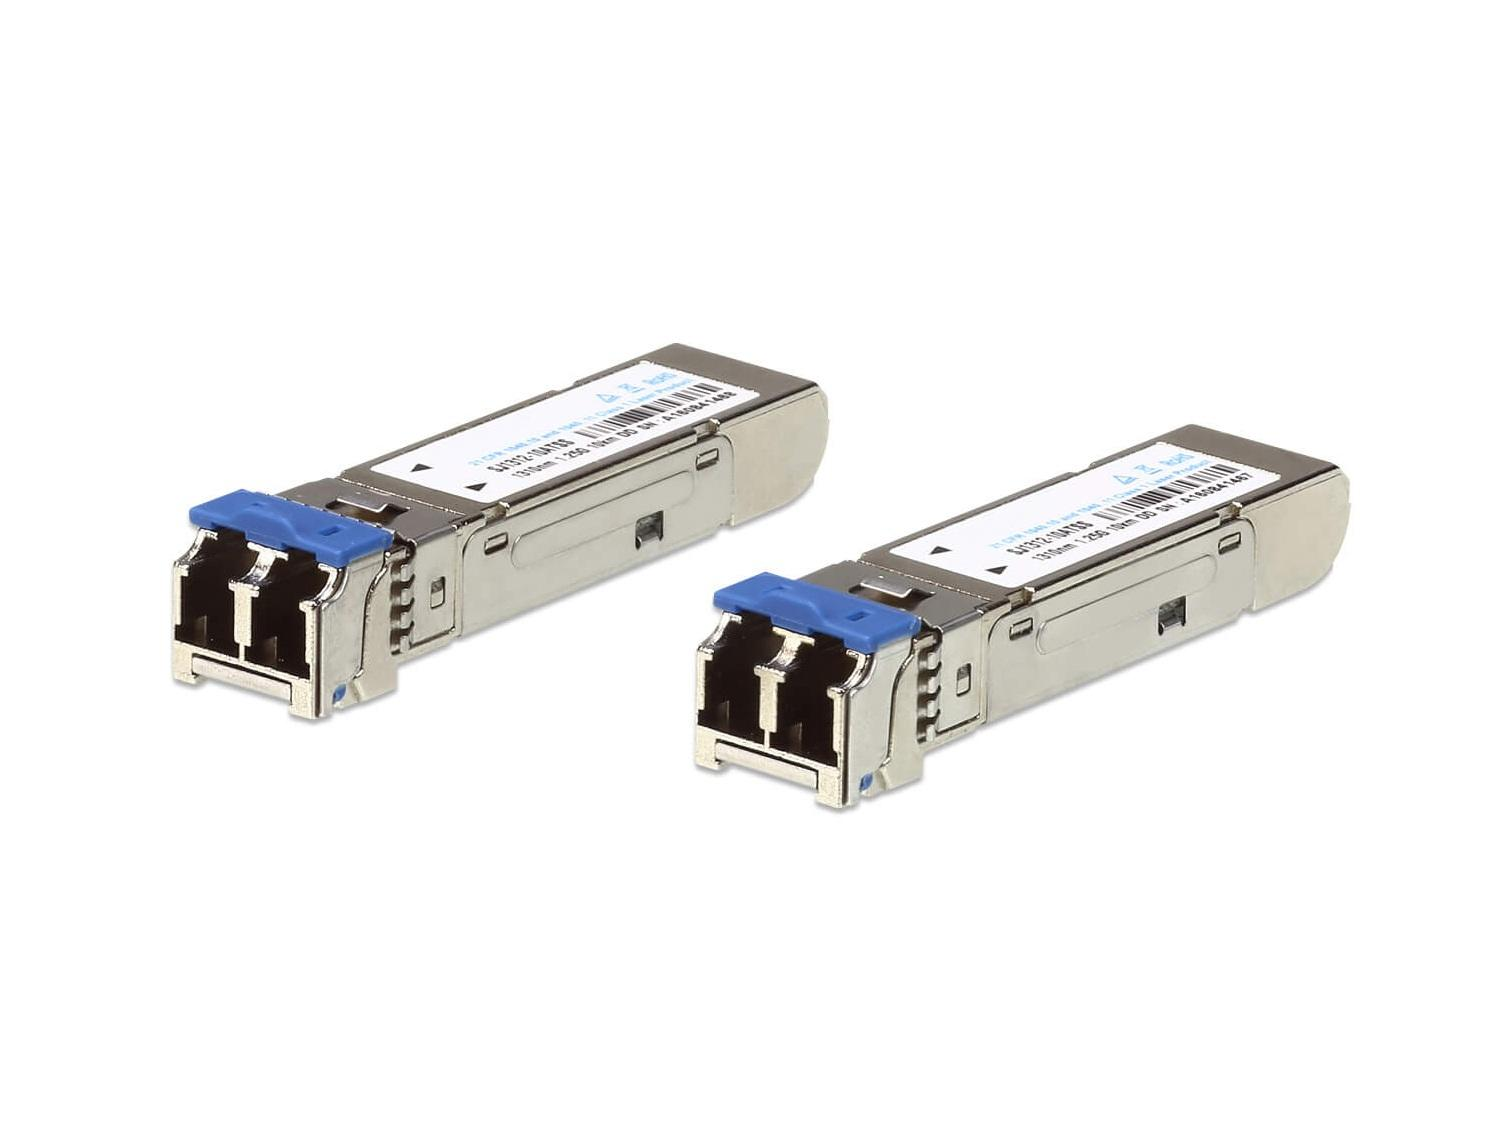 2A-136G Fiber Multi-Mode 1.25G SFP Transceiver Module (550m) (2 pcs per Package) by Aten